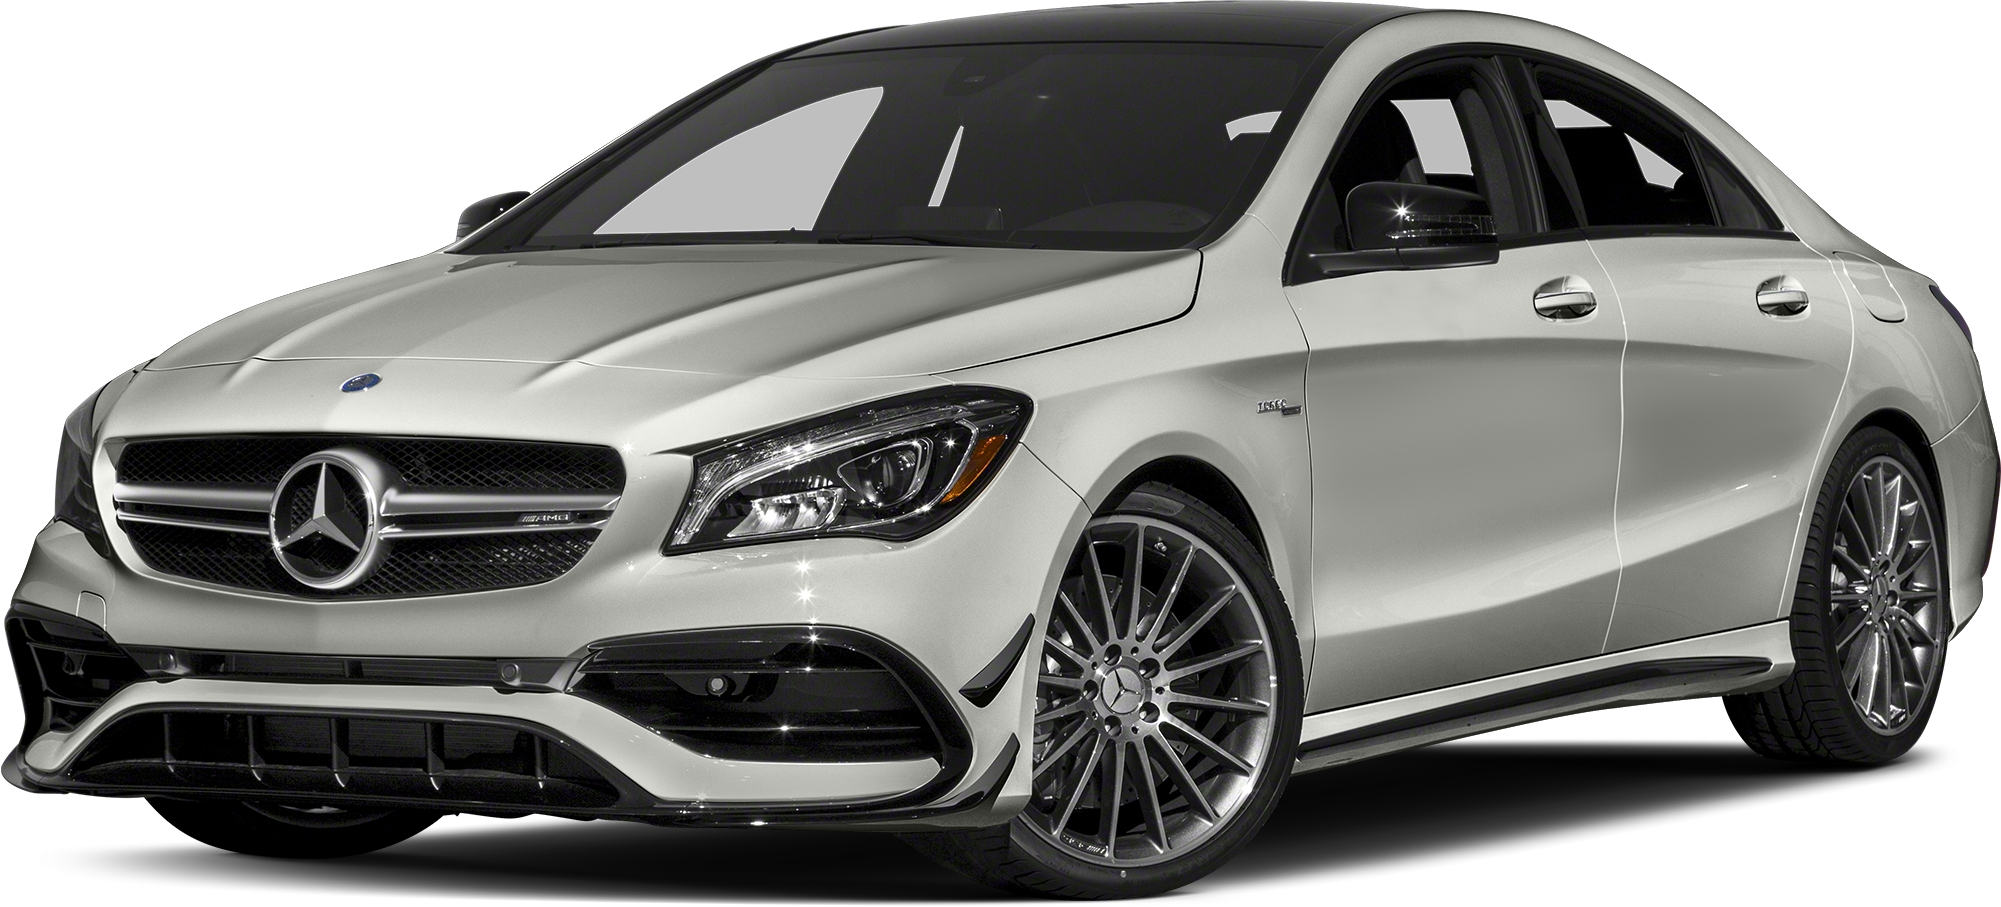 2018 mercedes benz cla amg 45 coupe 19036143 for sale. Black Bedroom Furniture Sets. Home Design Ideas